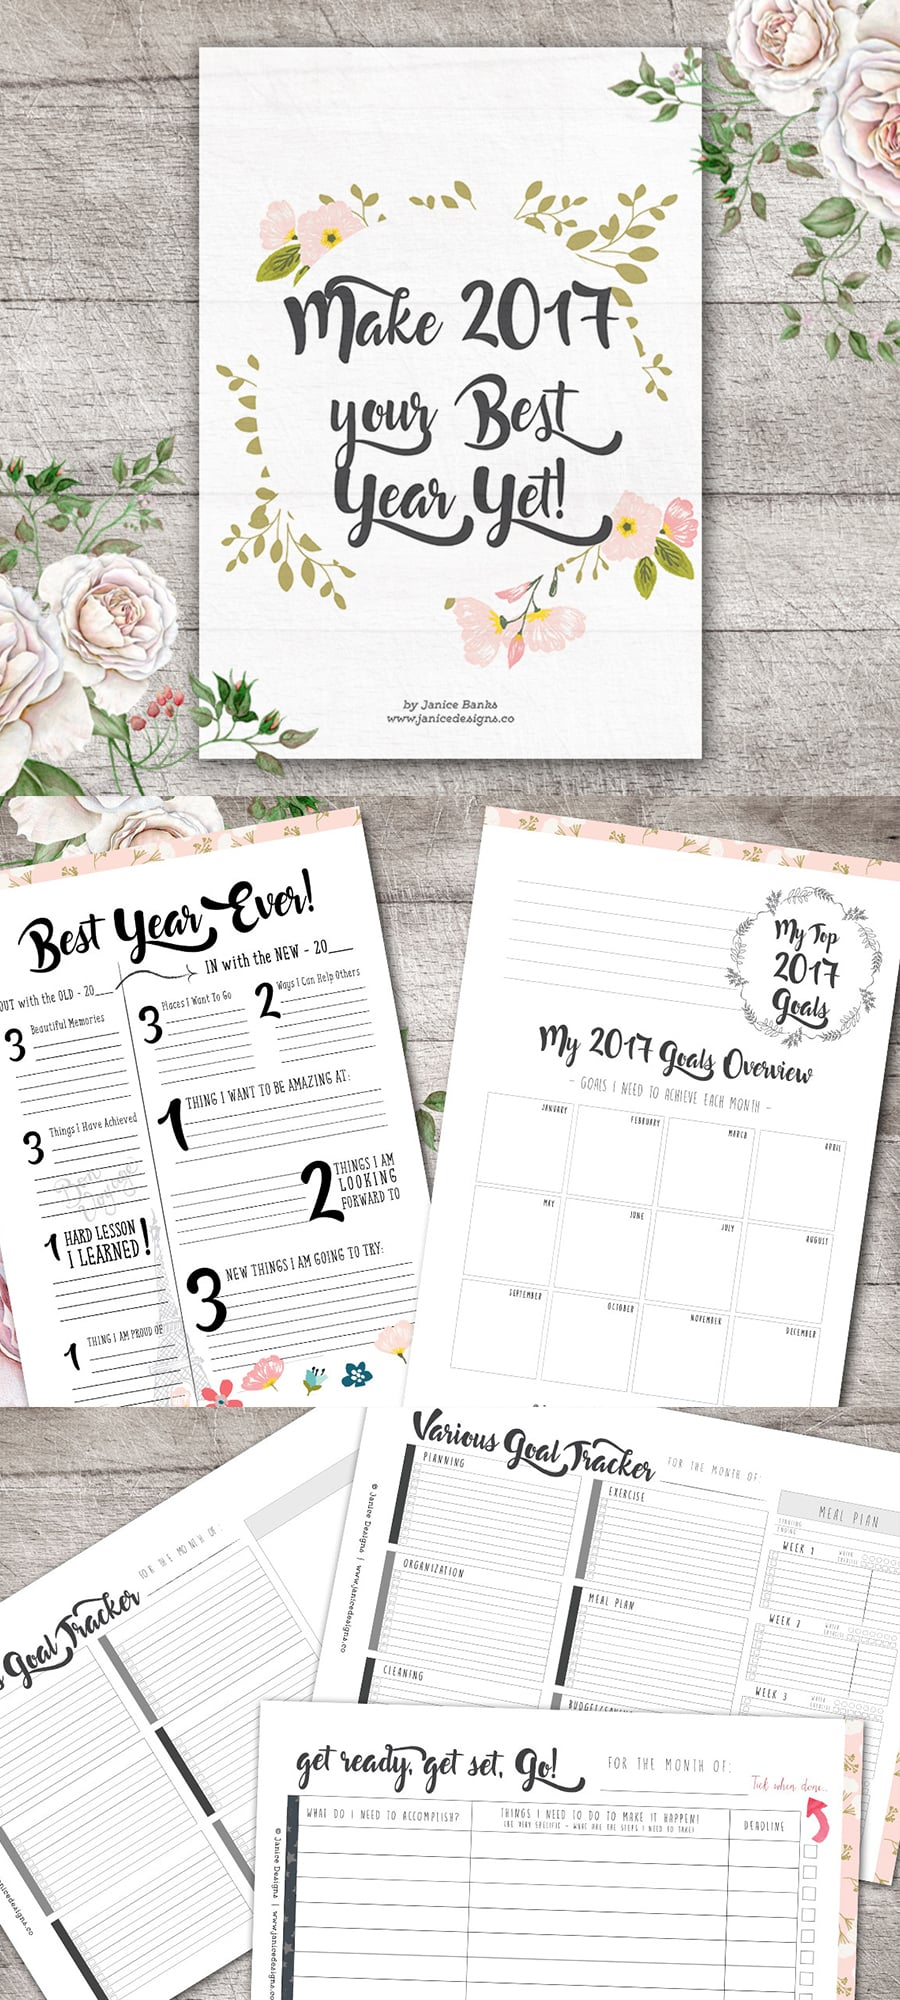 Life Planner: Make 2018 Your Best Year Yet Collection - Full preview 900x2000px 1